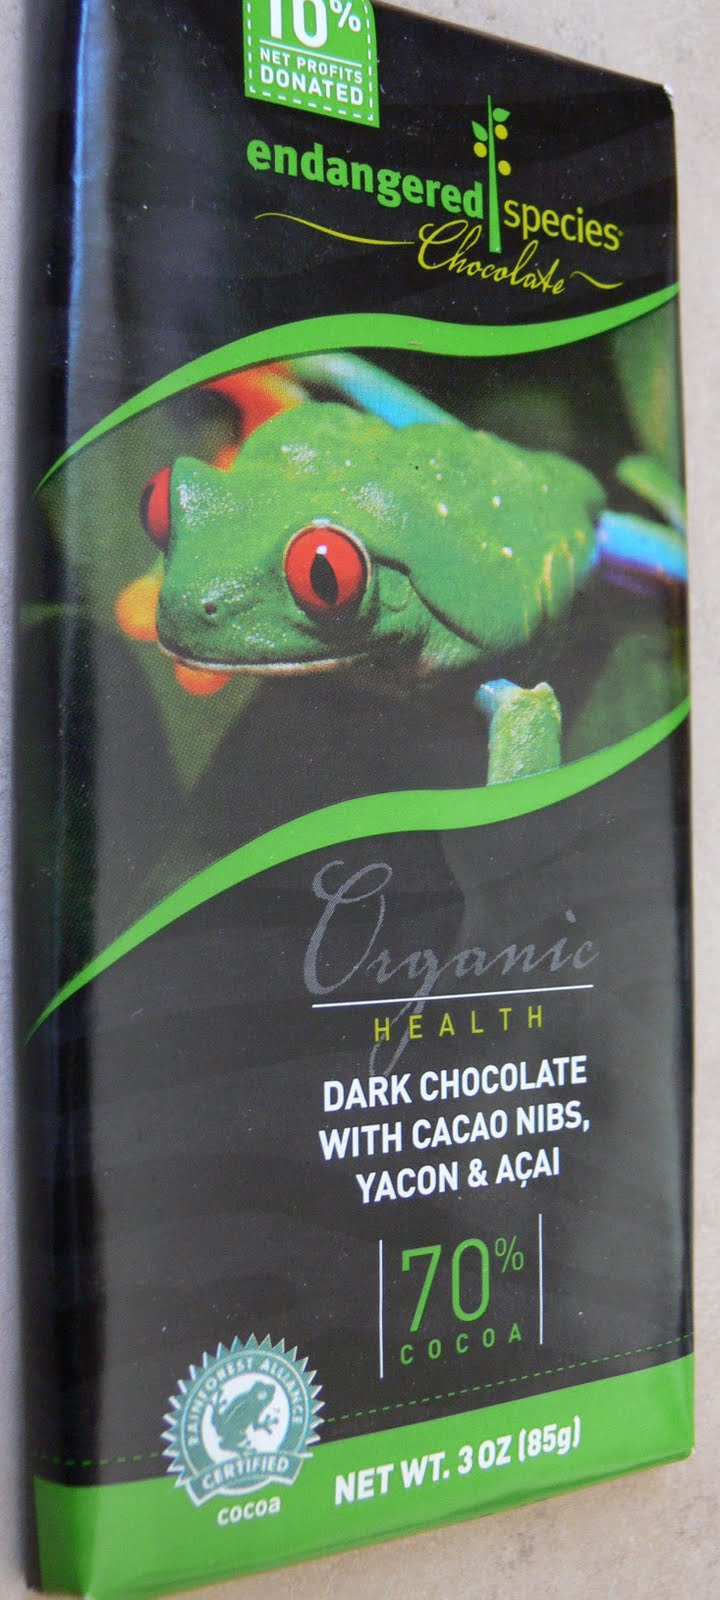 The Ultimate Chocolate Blog: Healthy Chocolate? Endangered Species ...